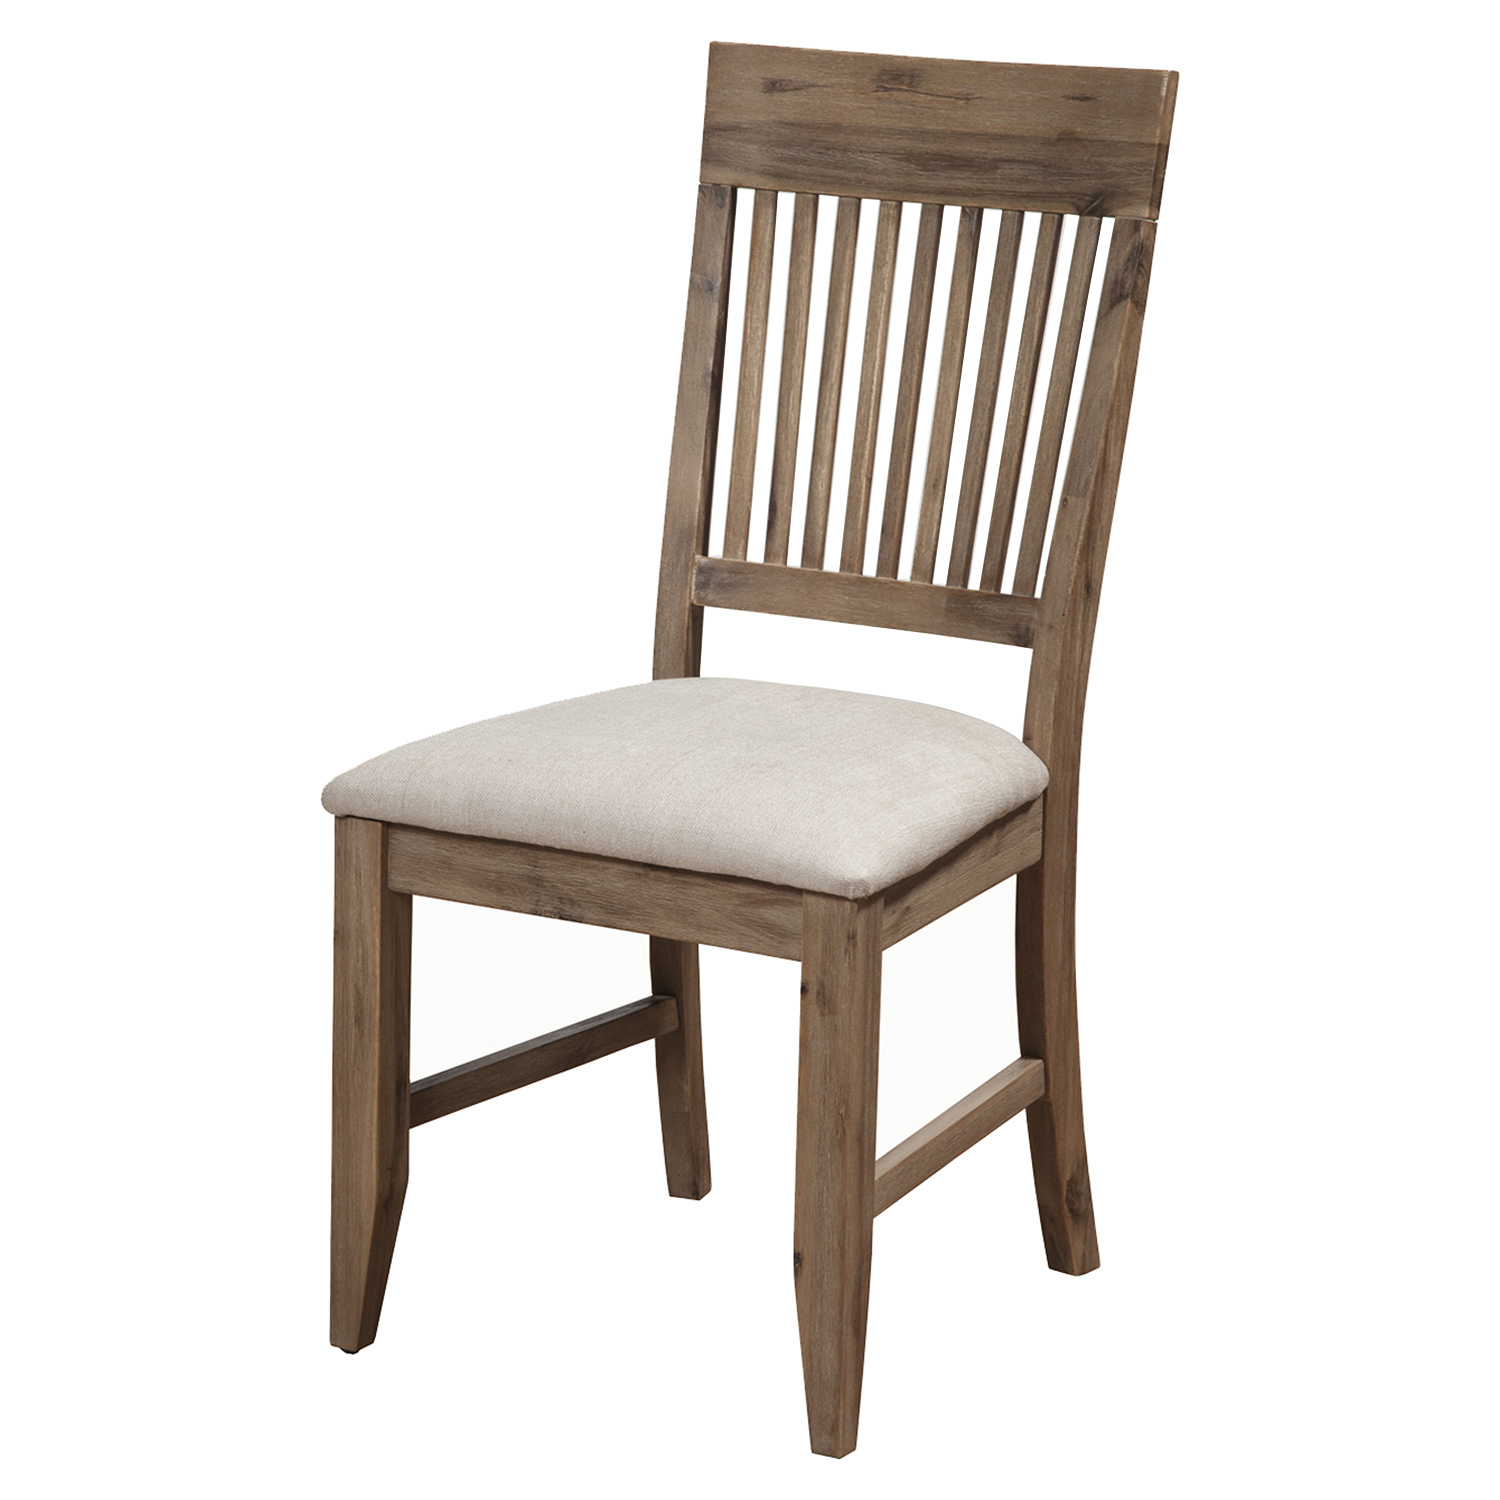 Aspen Side Chair - Antique Natural - ALP-8812-02